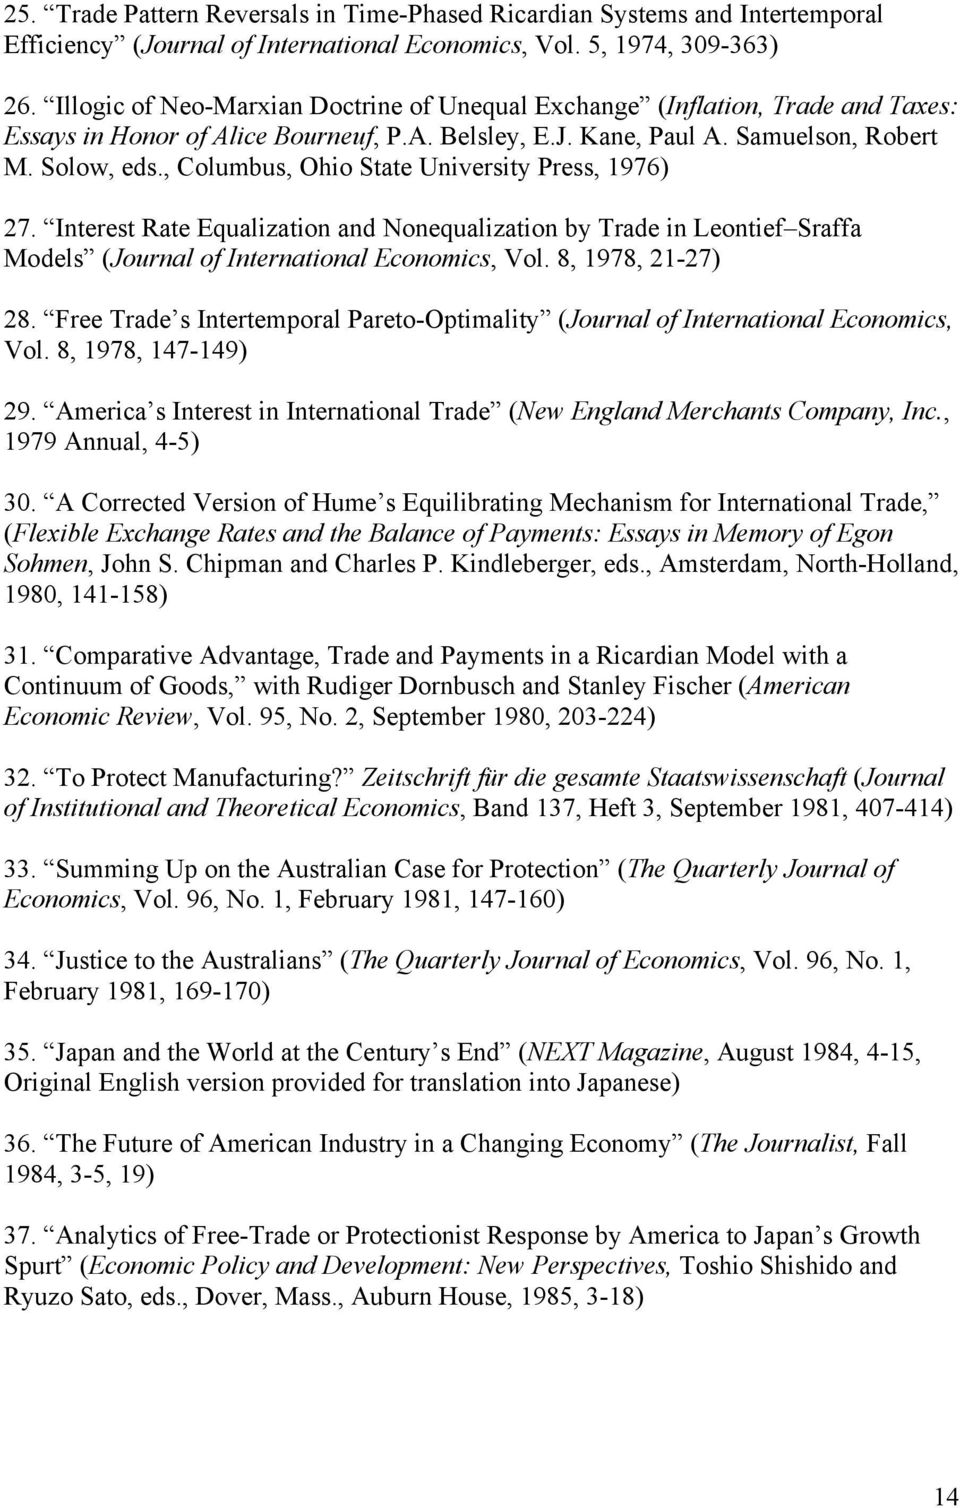 , Columbus, Ohio State University Press, 1976) 27. Interest Rate Equalization and Nonequalization by Trade in Leontief Sraffa Models (Journal of International Economics, Vol. 8, 1978, 21-27) 28.